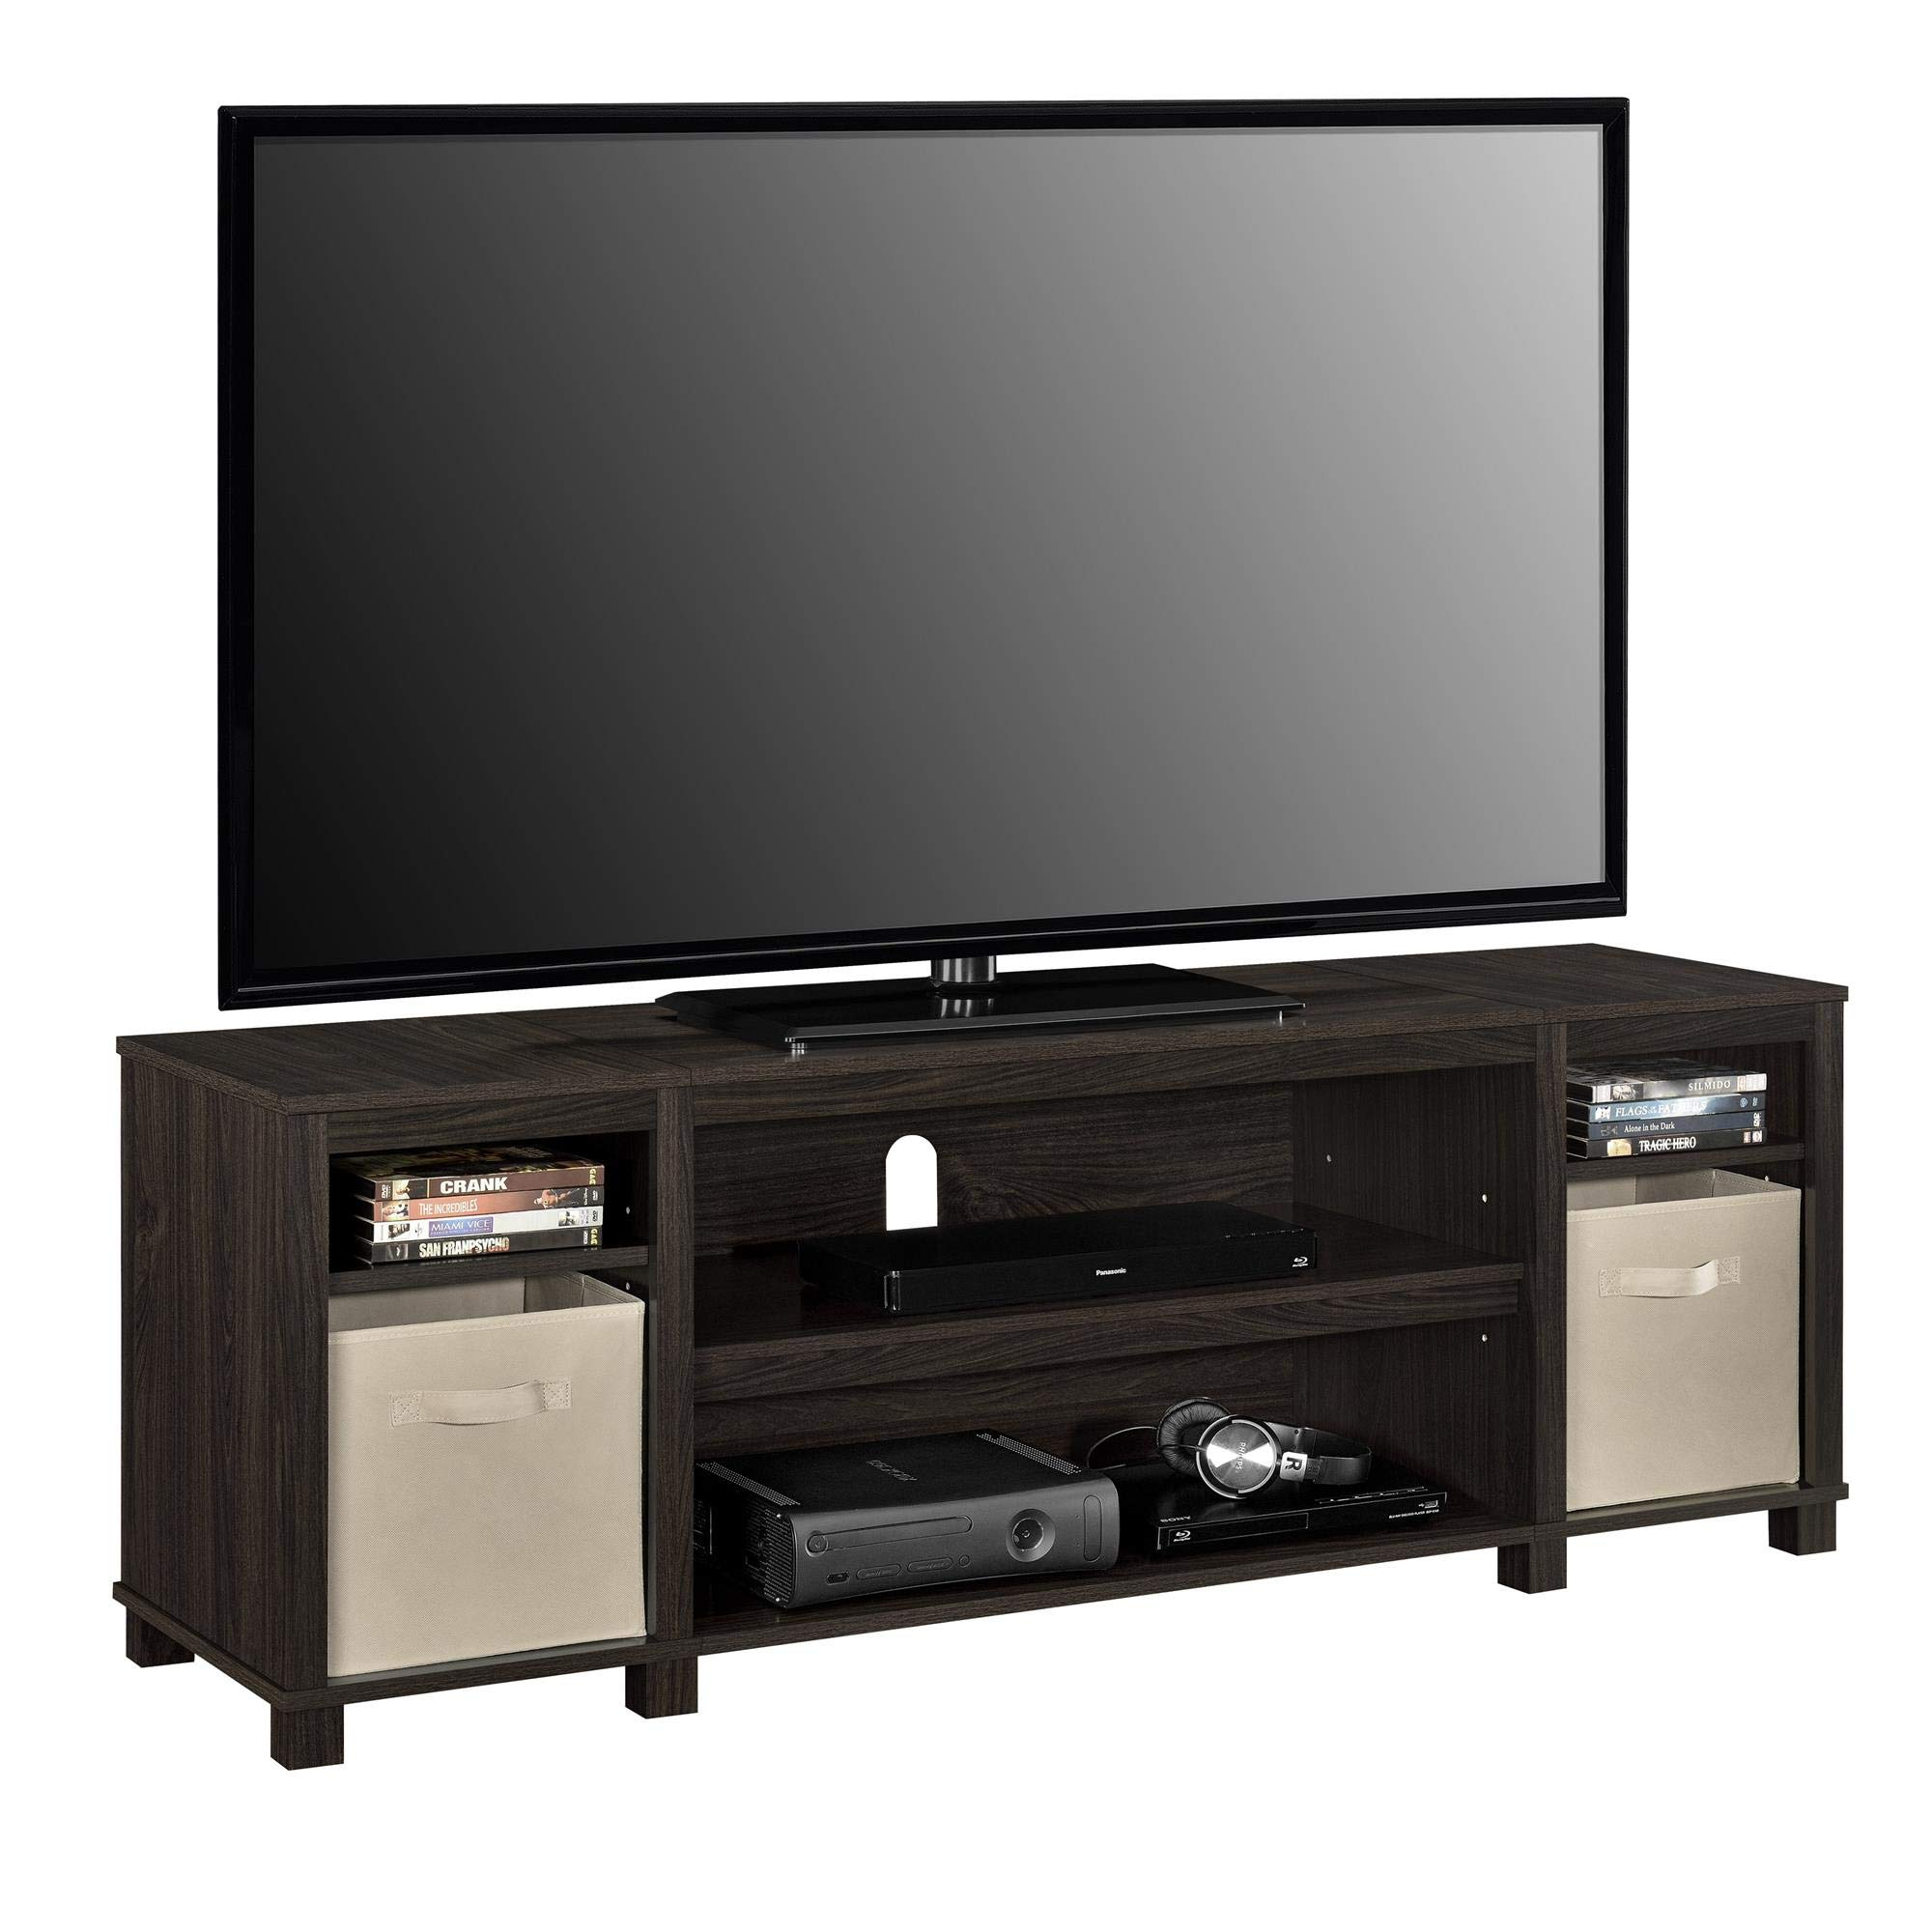 Ameriwood Basics Lost Hill TV Stand with 2 Bins for TVs up to 60'' (Espresso)